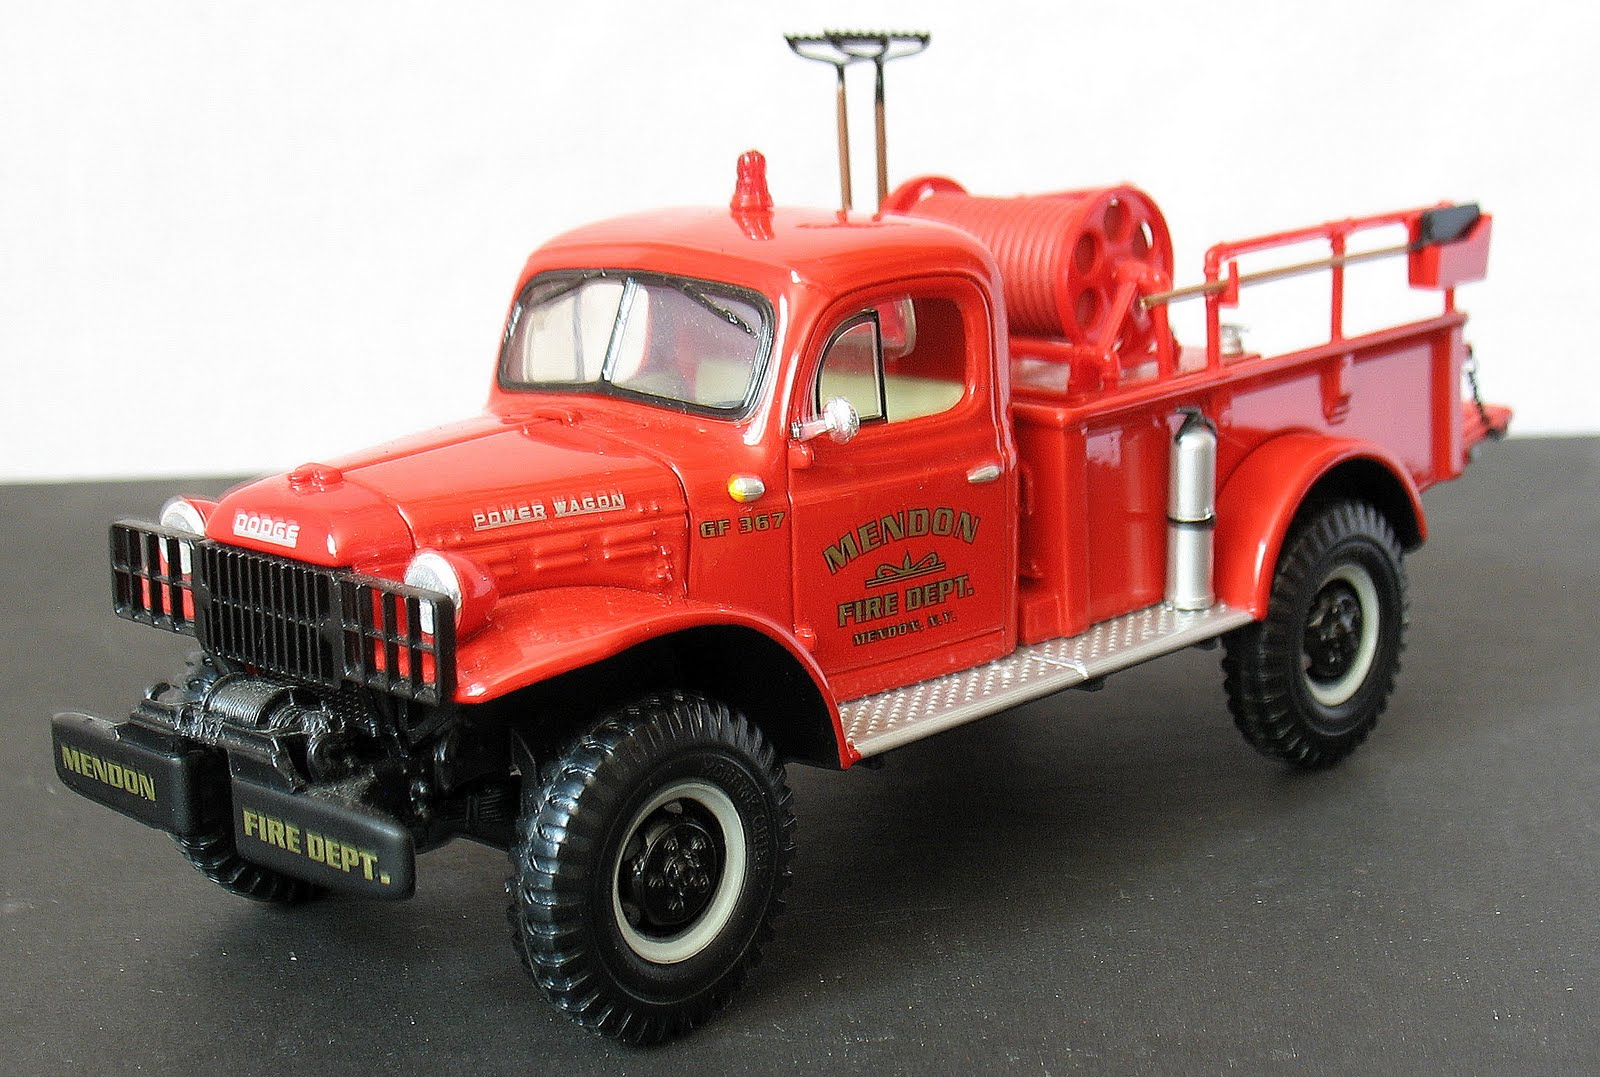 Im Liking Trucks The Great First Gear Mendon Fire Dept Dodge 1976 Chevy 4x4 3 4 Ton Power Wagon Caper